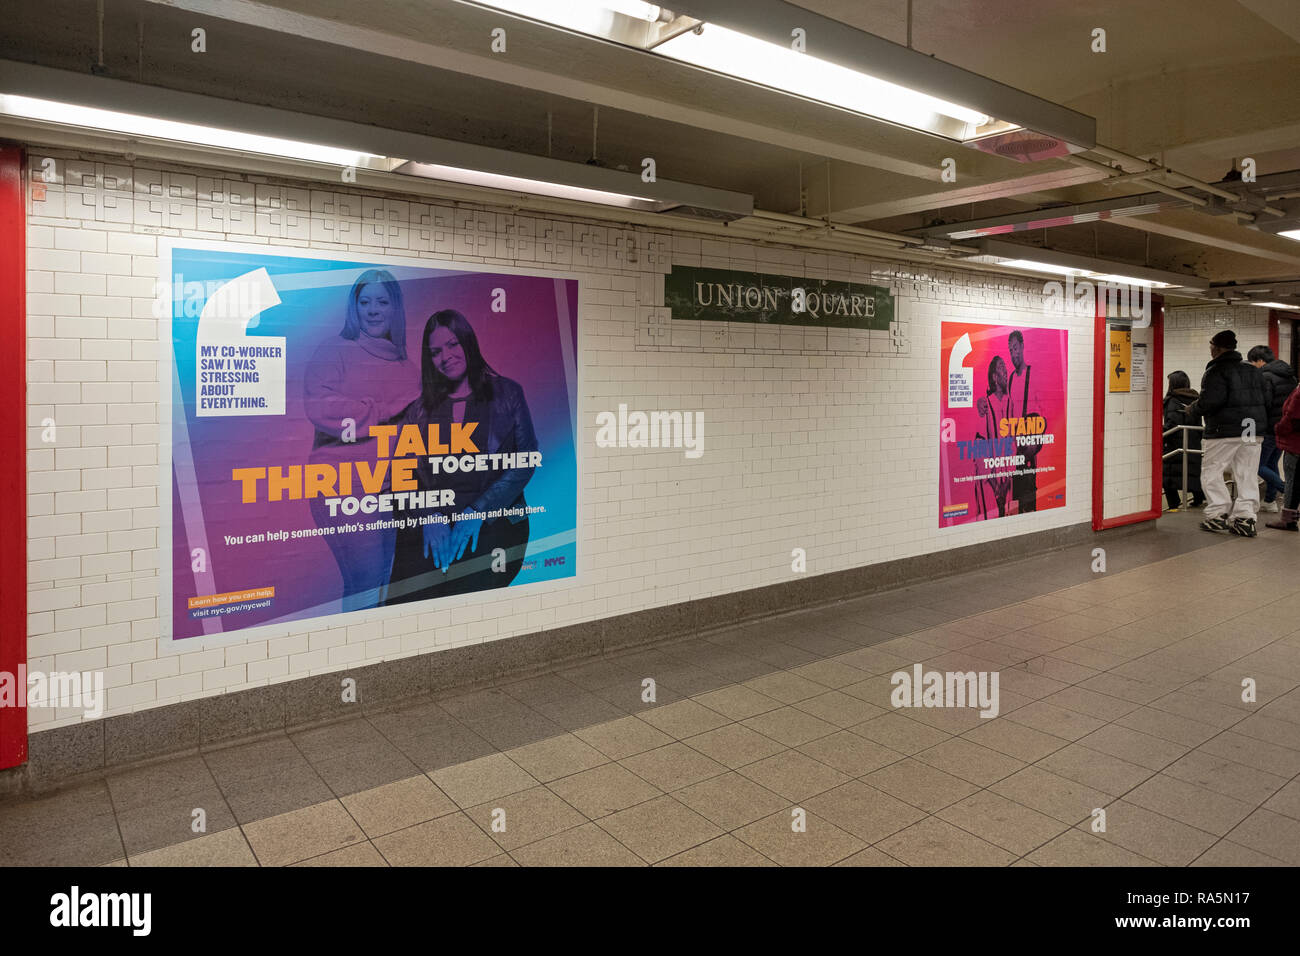 Plakate für die NYC BEMÜHEN Programm in der Union Square U-Bahn Station in Manhattan, New York City. Stockbild